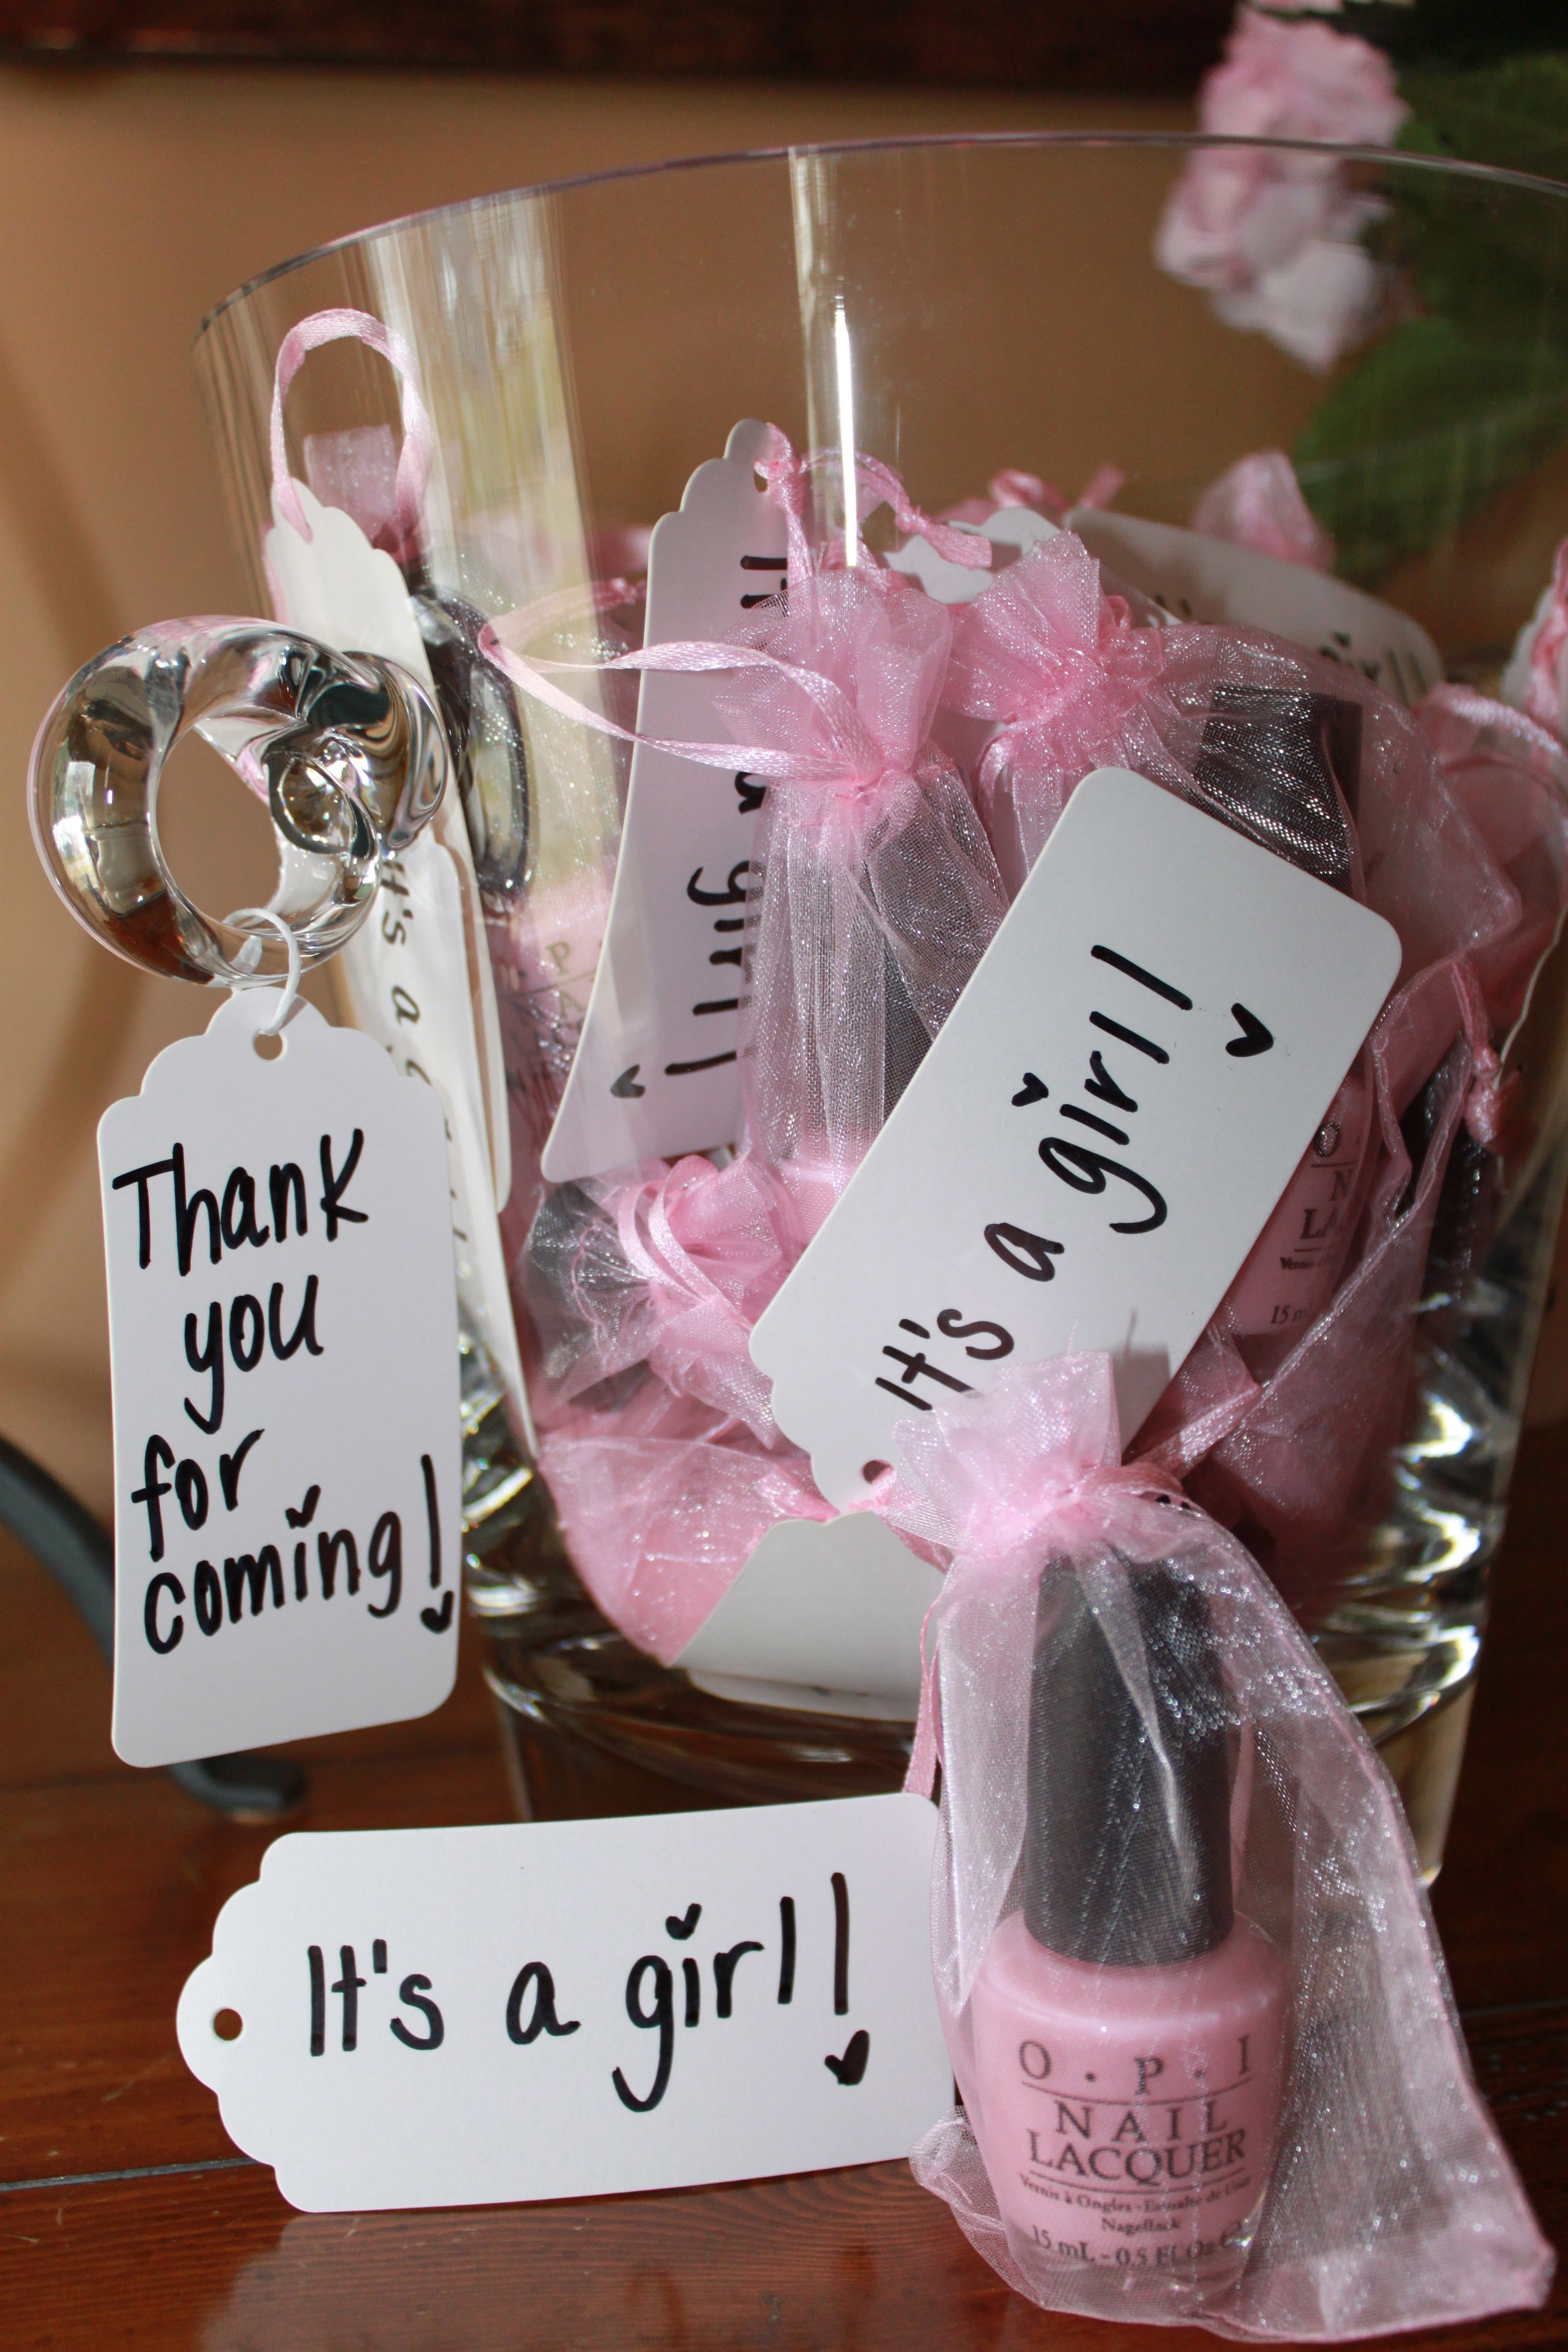 Baby Shower Favors For Guests Opi Nail Polish In A Cute Little